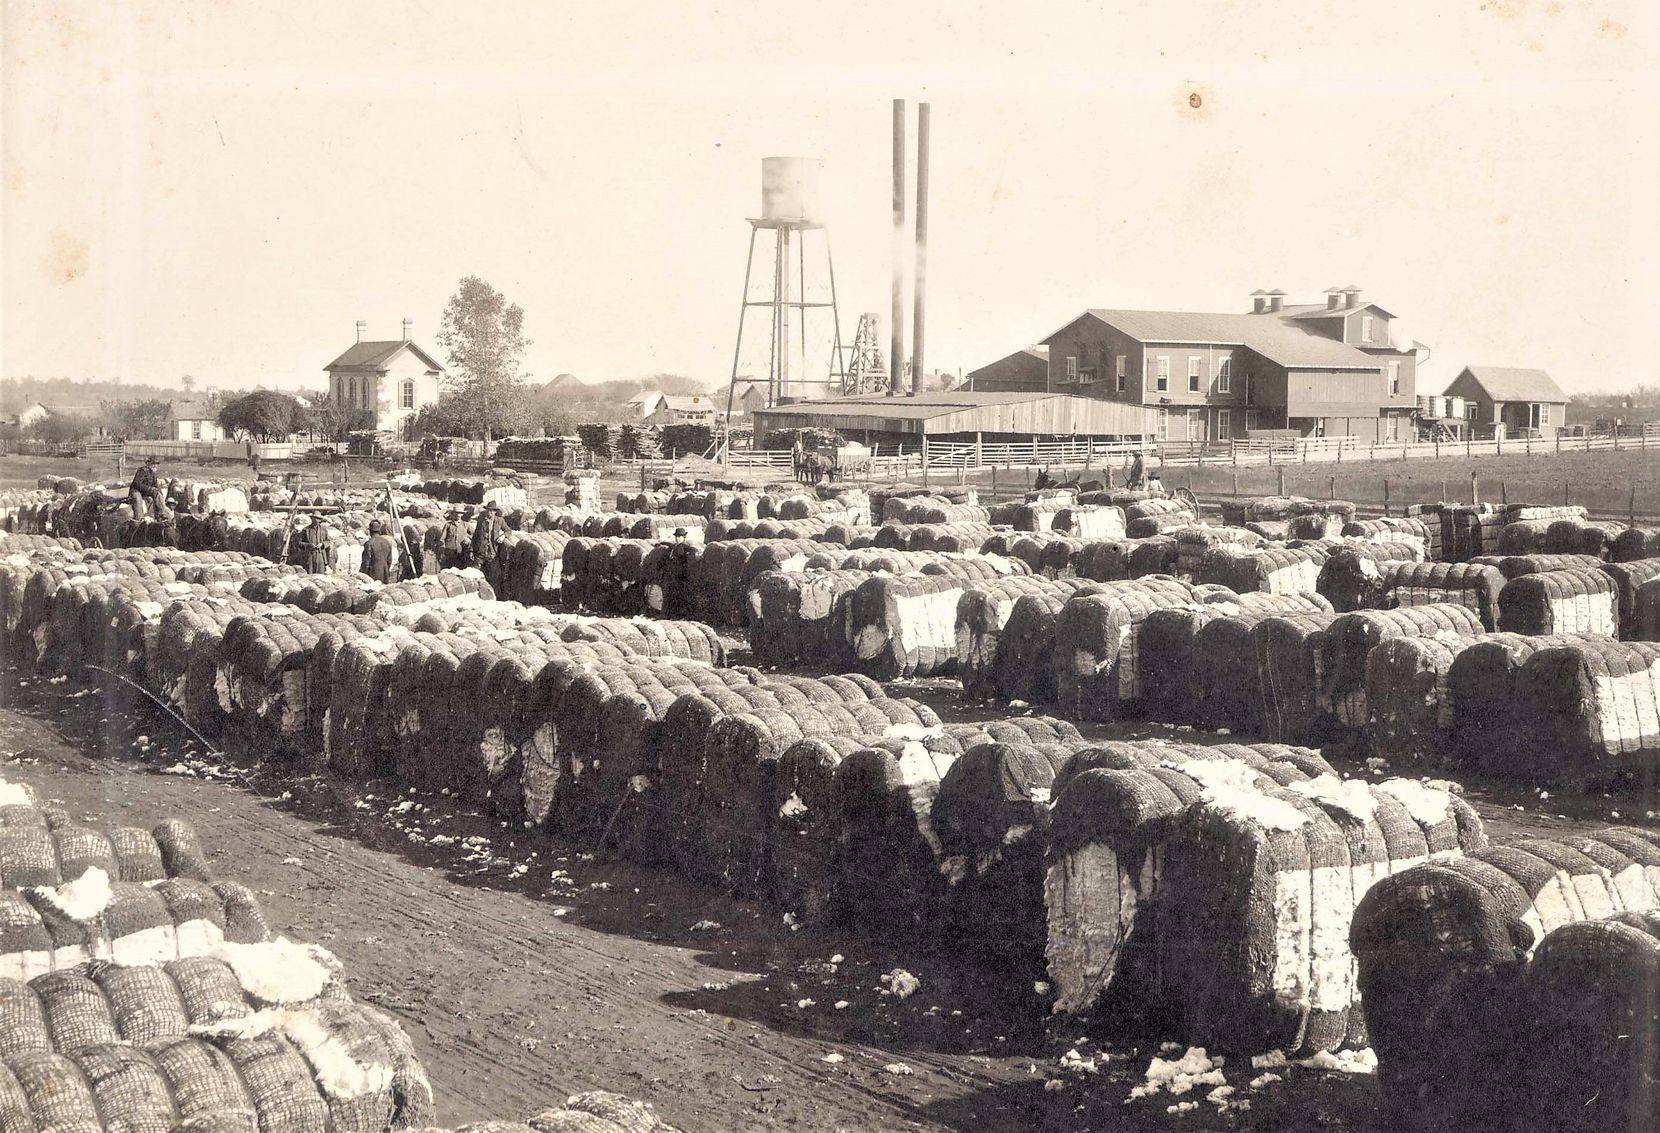 The Selz Cotton Gin in Pilot Point in a historical photo.